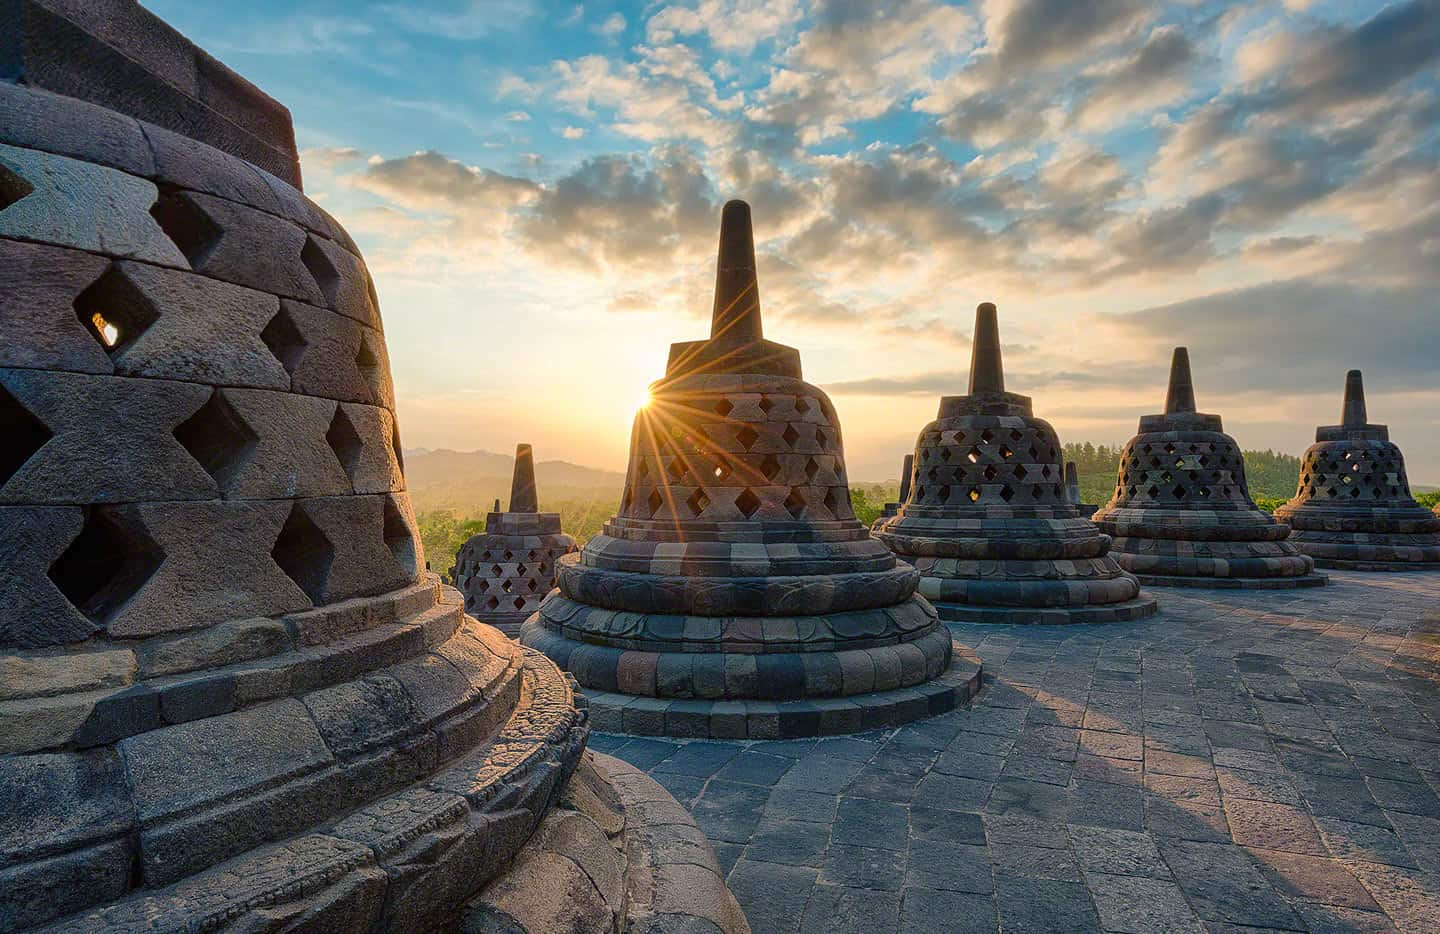 voyage indonesie temple borobudur java